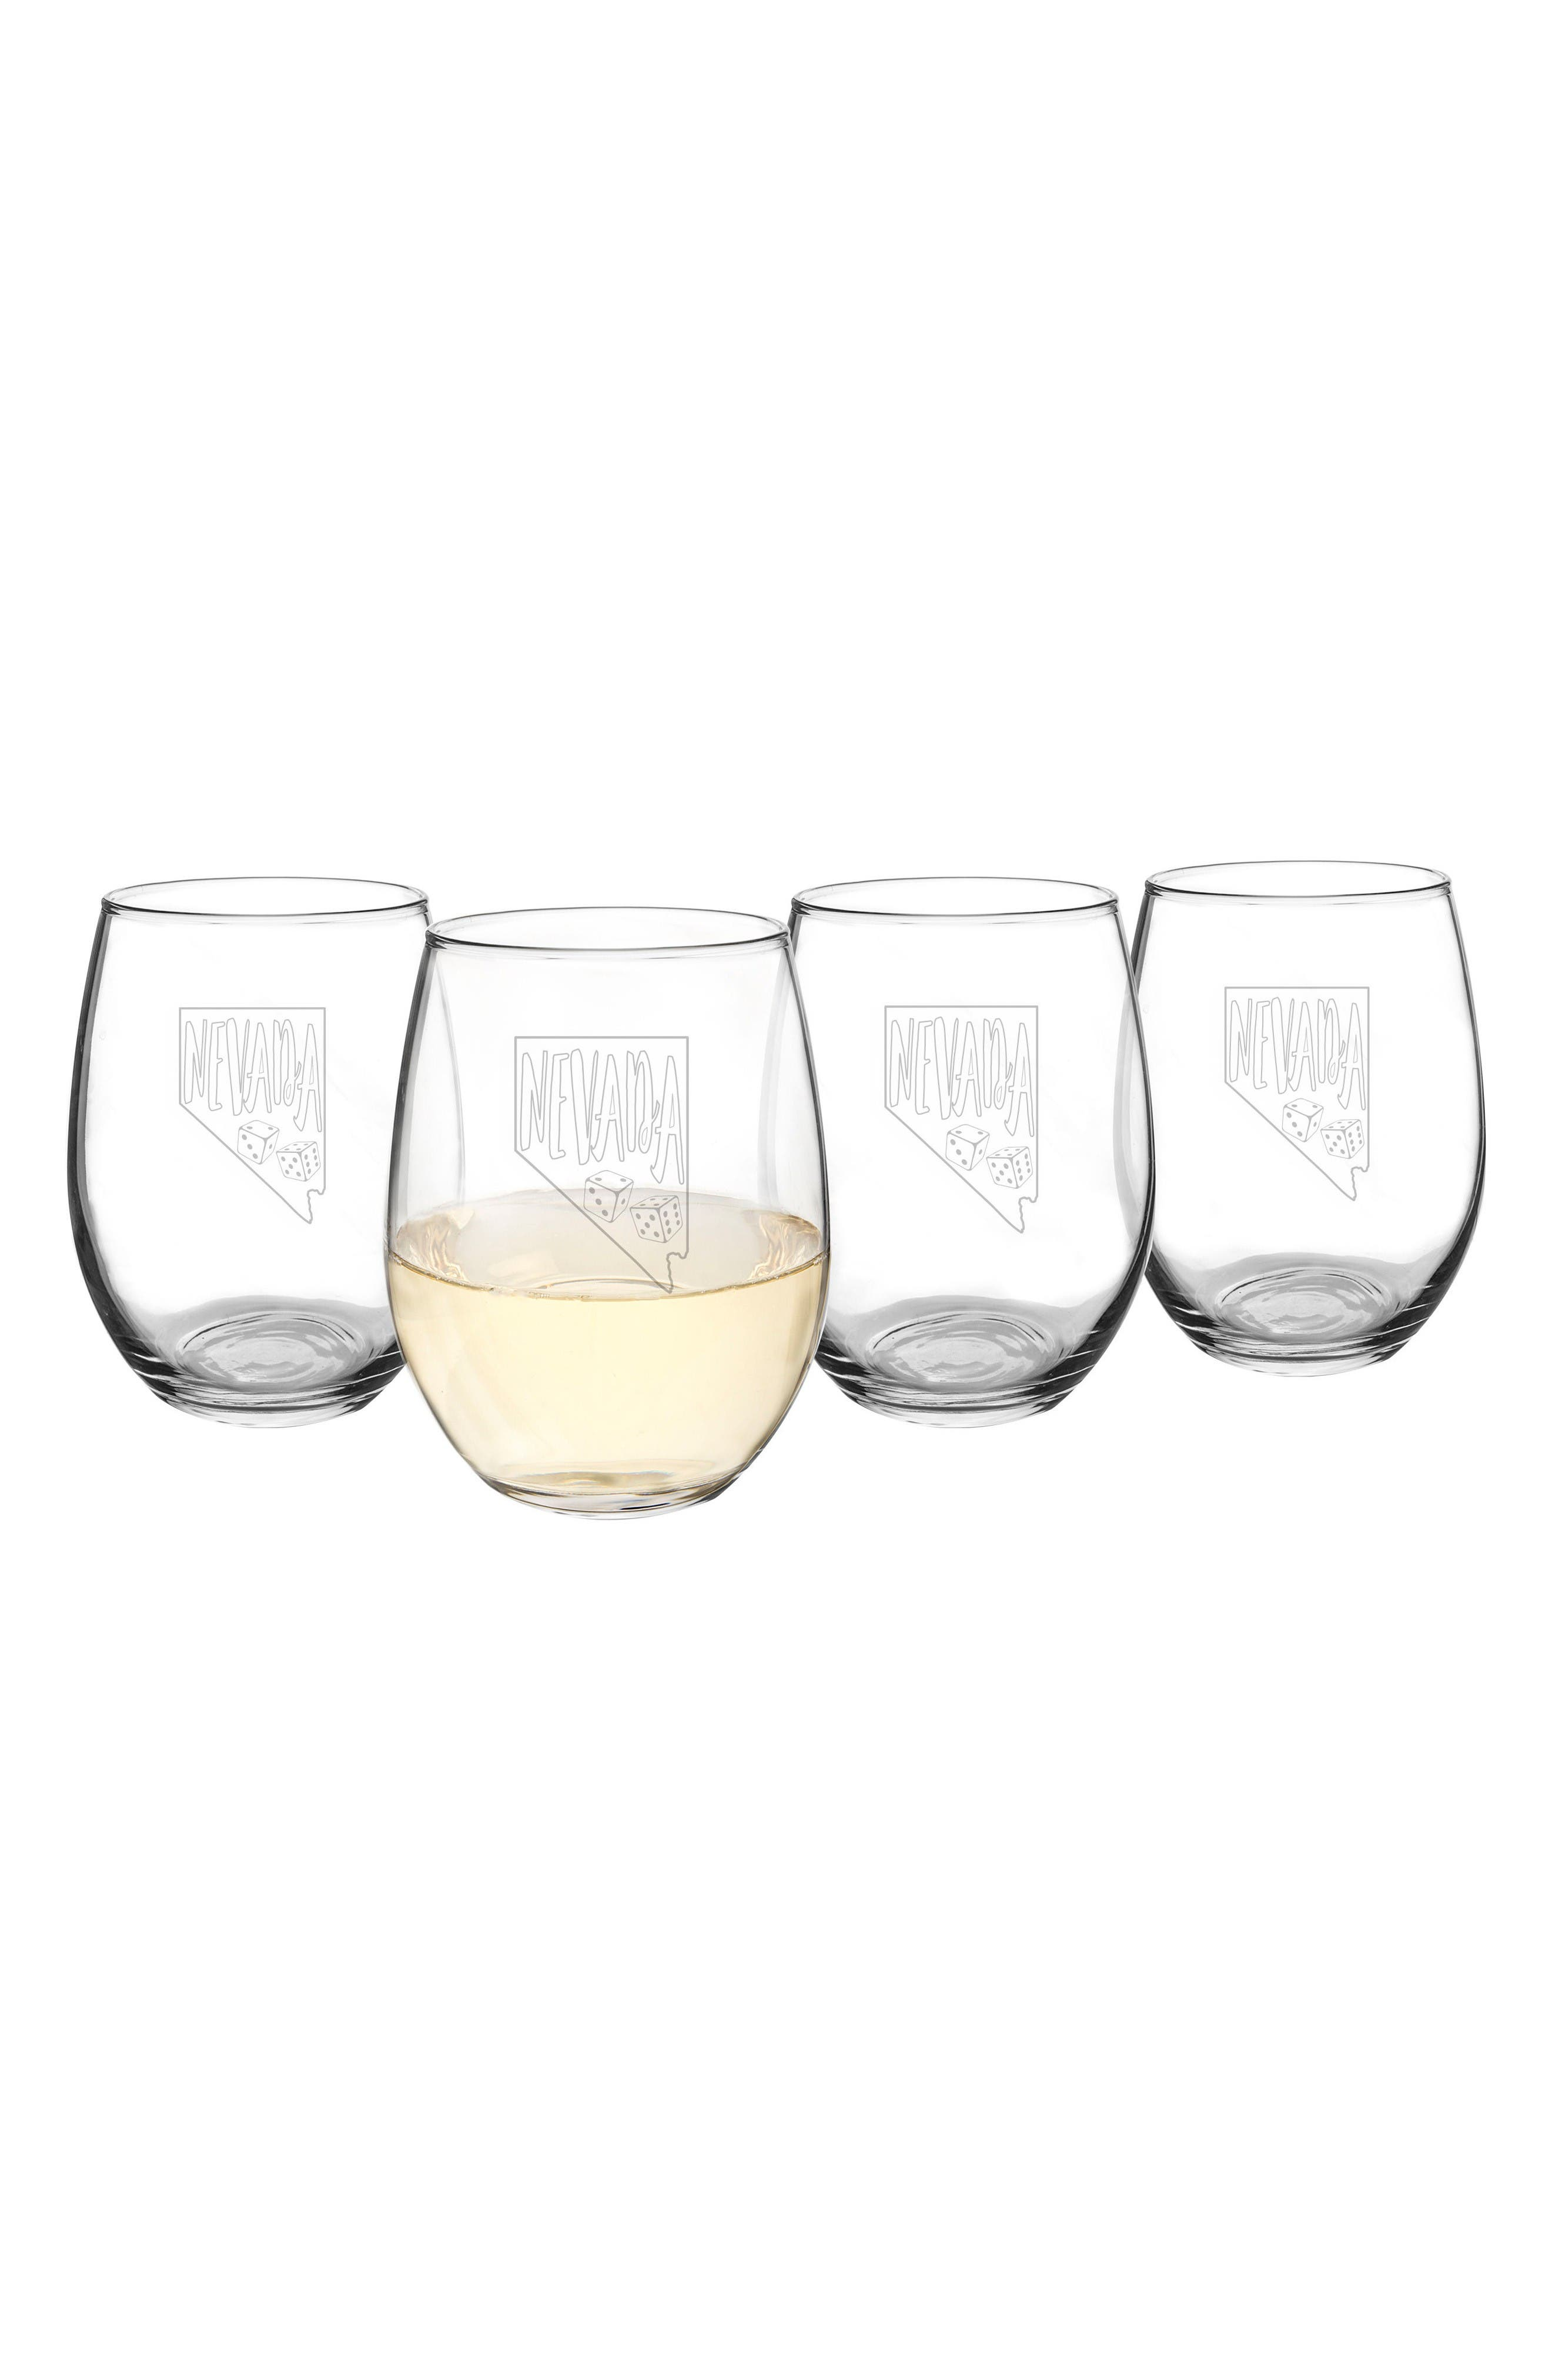 State Set of 4 Stemless Wine Glasses,                         Main,                         color, Clear - Nv